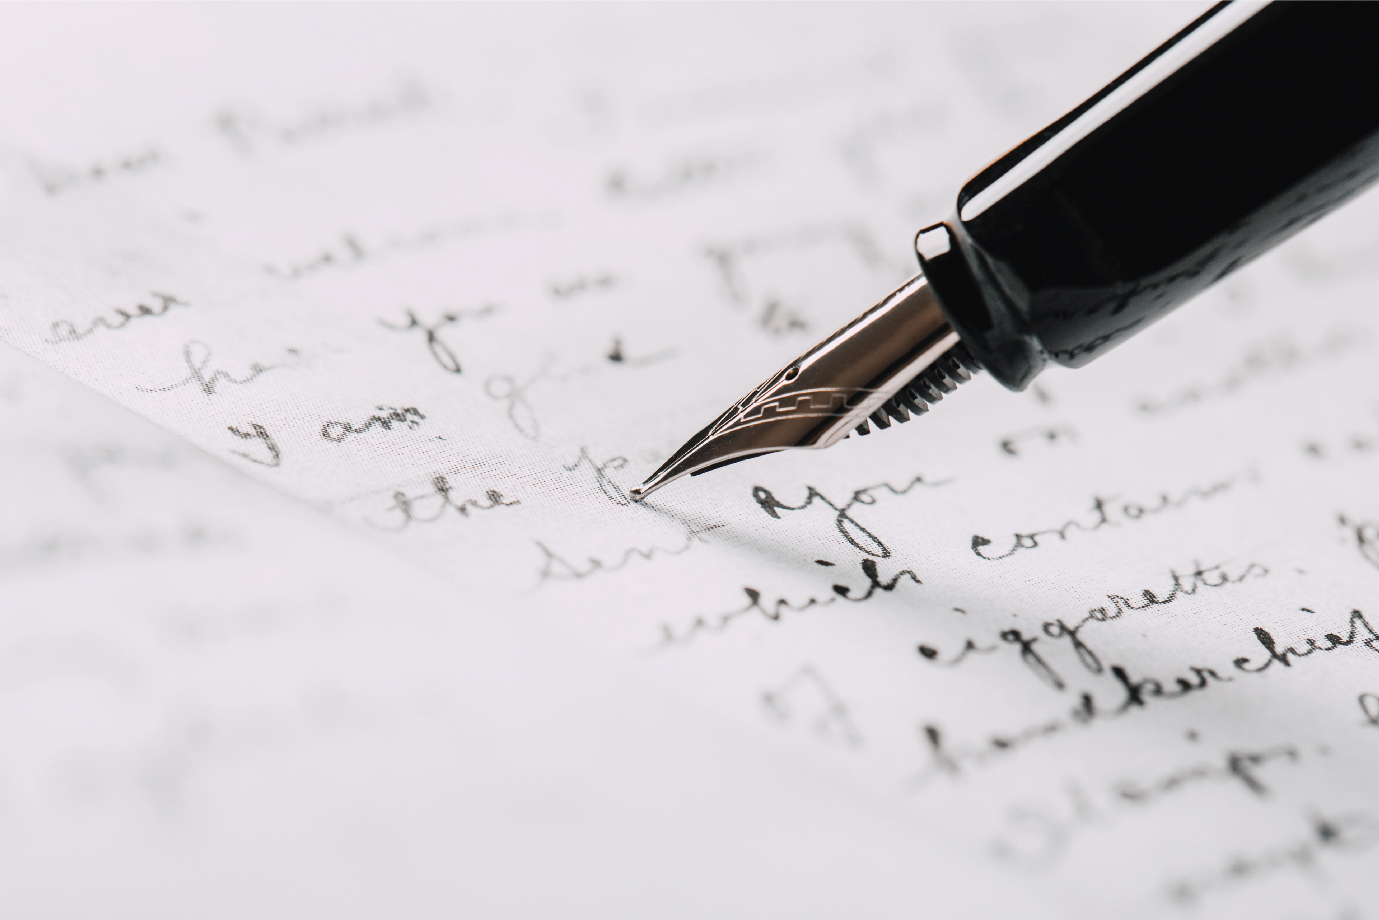 A letter being written with a fountain pen